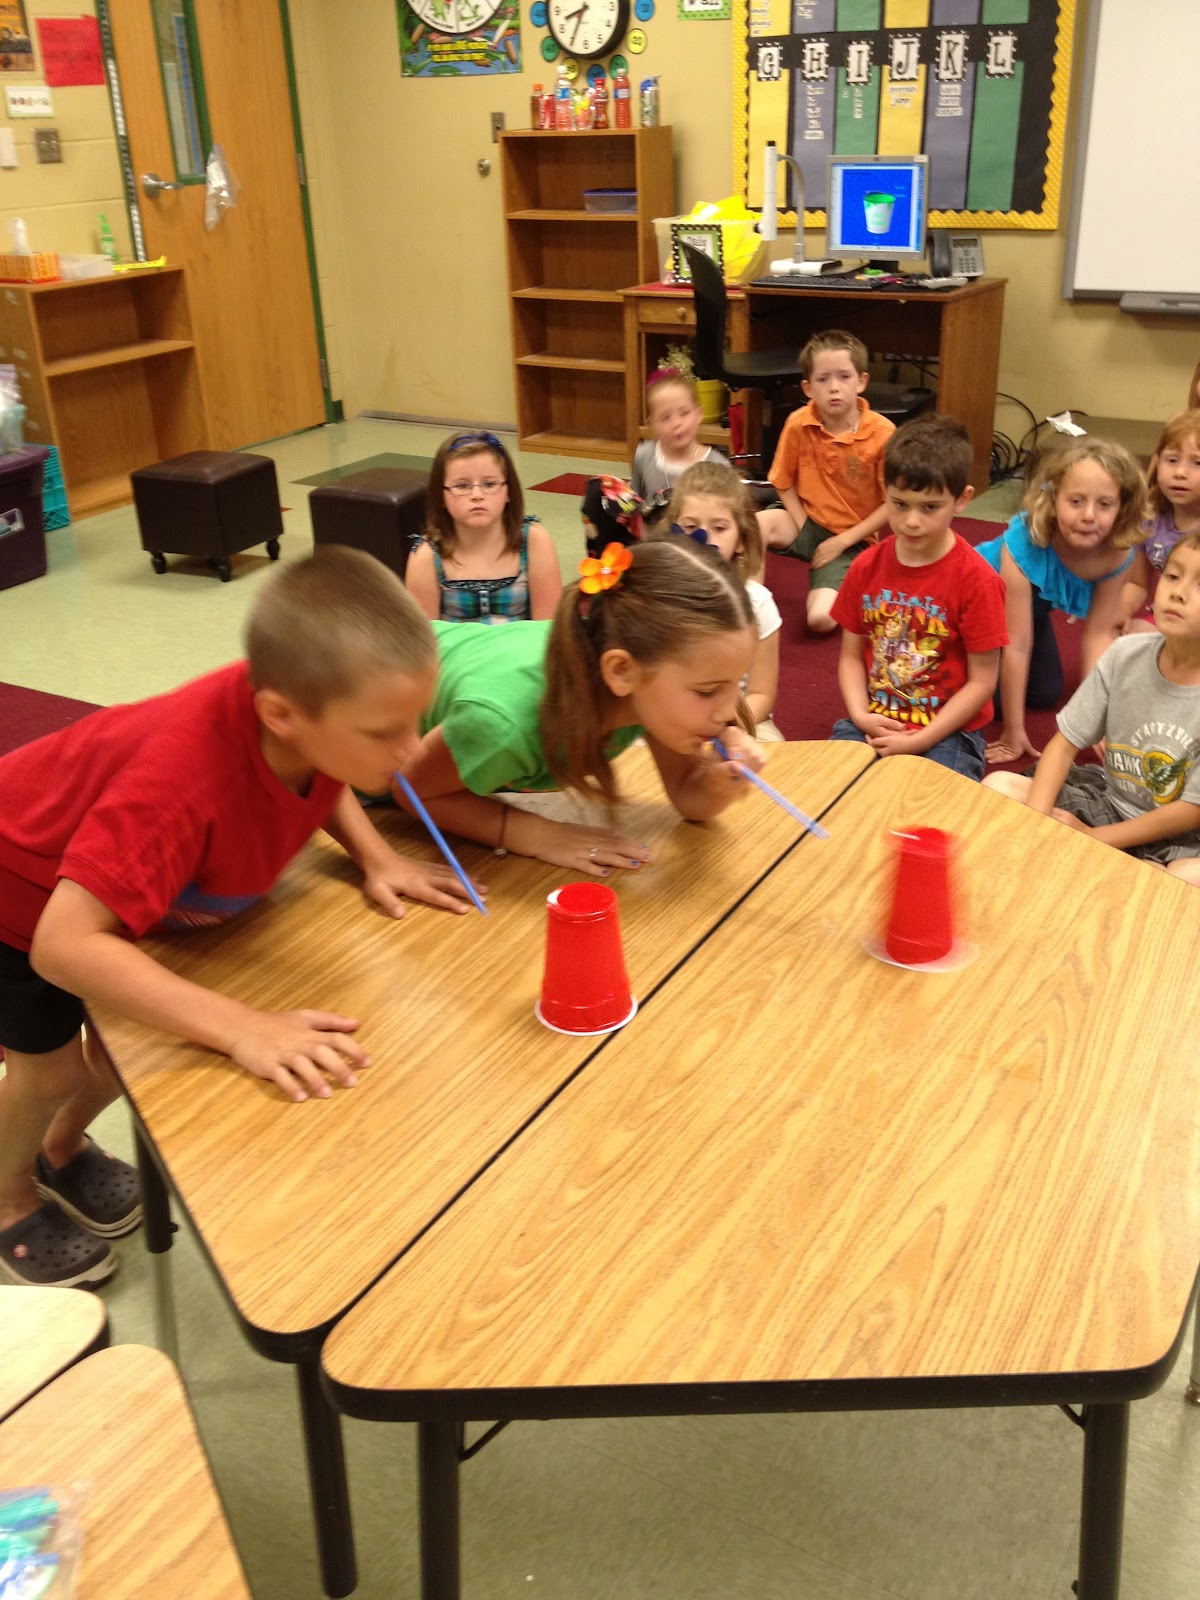 Classroom Game Ideas : Minute to win it games great idea fall festival